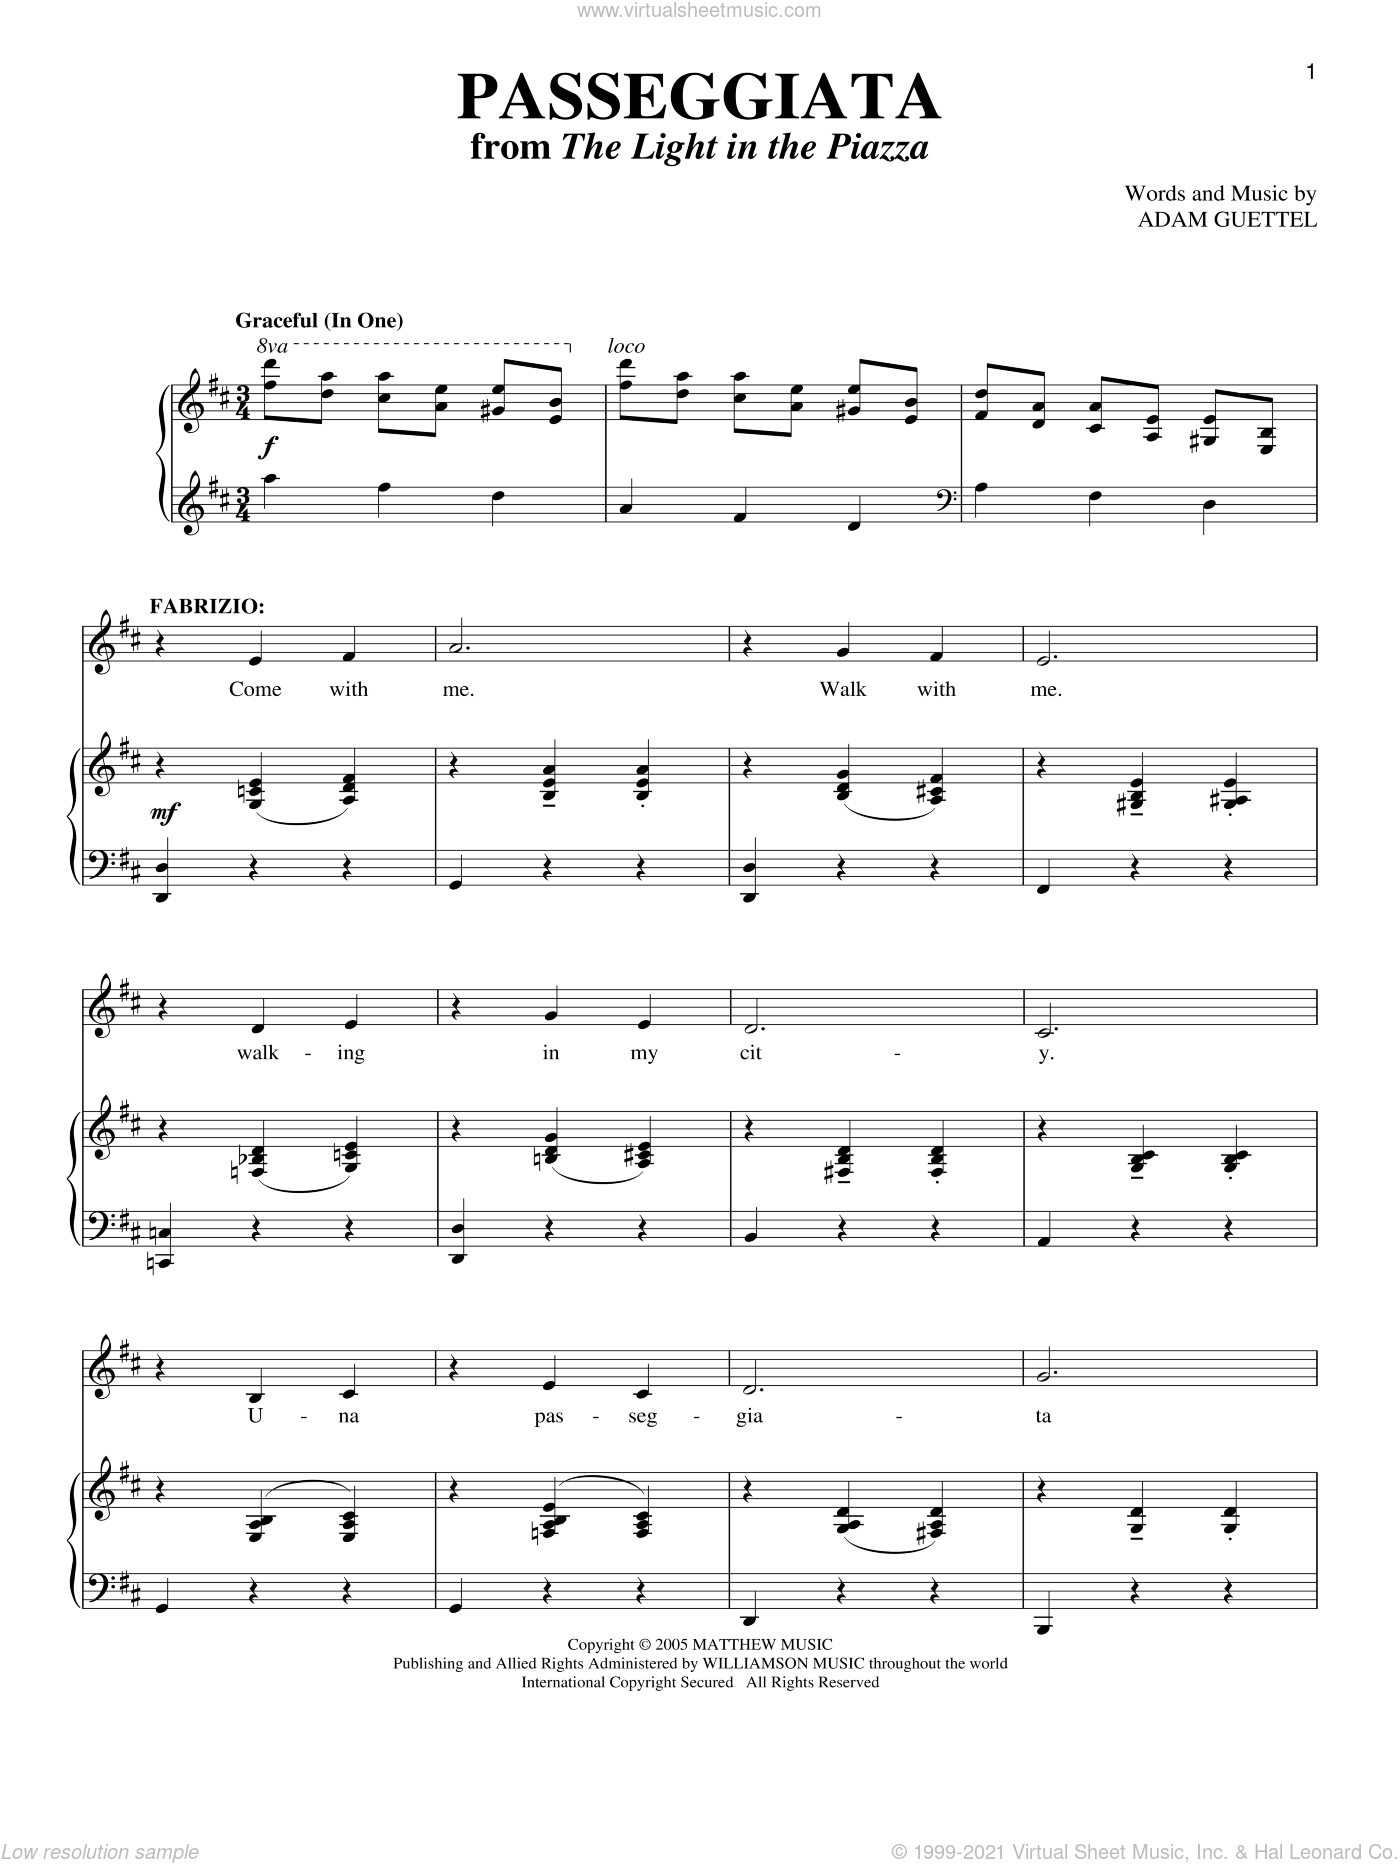 Passeggiata sheet music for voice and piano by Adam Guettel